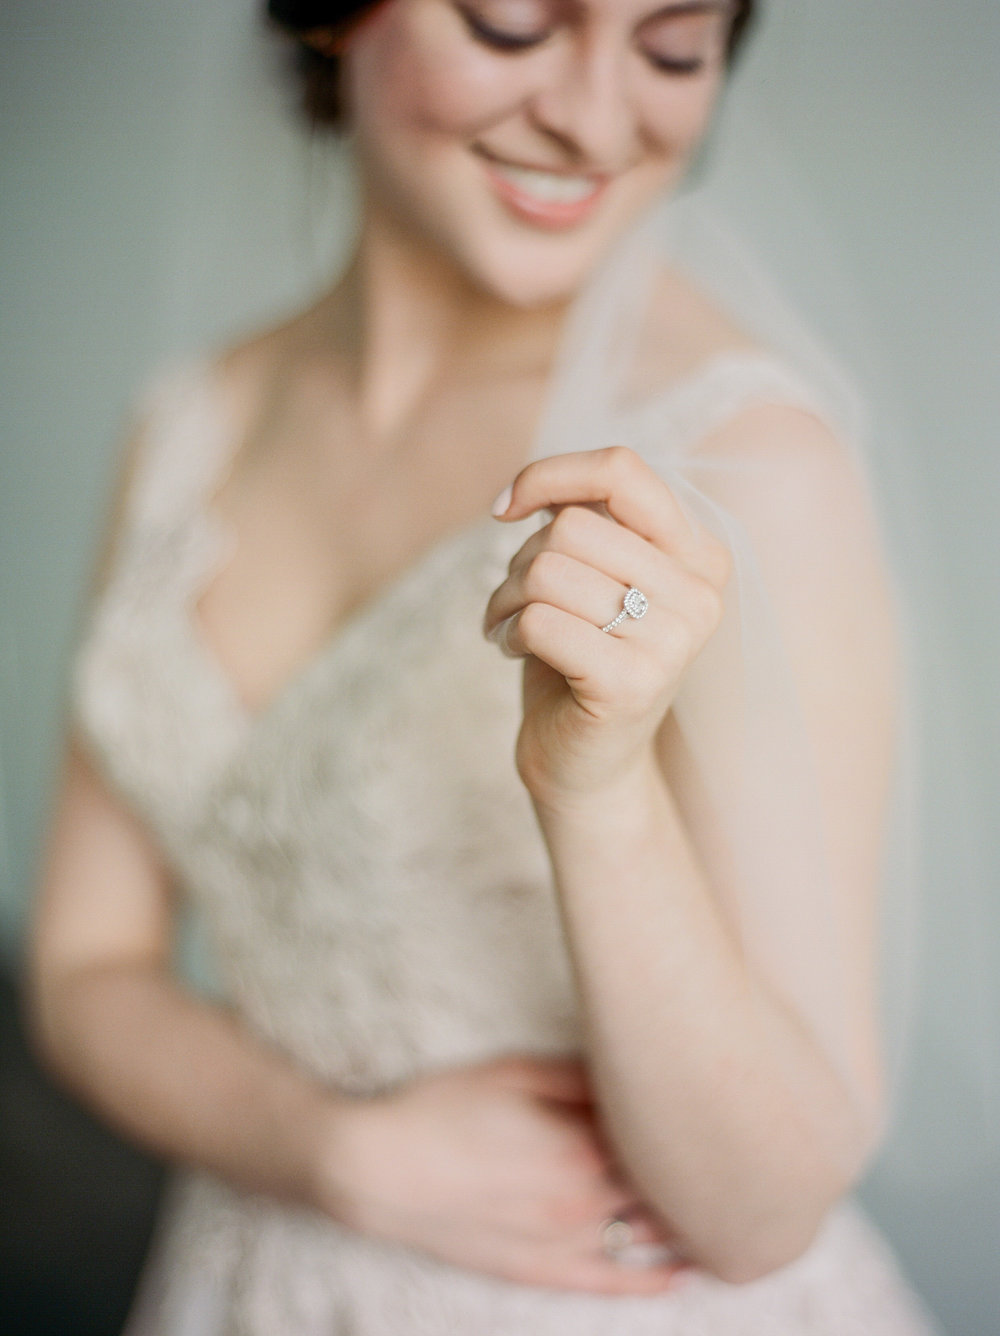 Houston-Wedding-Photographer-Austin-Dallas-New-York-California-Destination-Wedding-Film-Bridal-Portrait-Studio-8.jpg